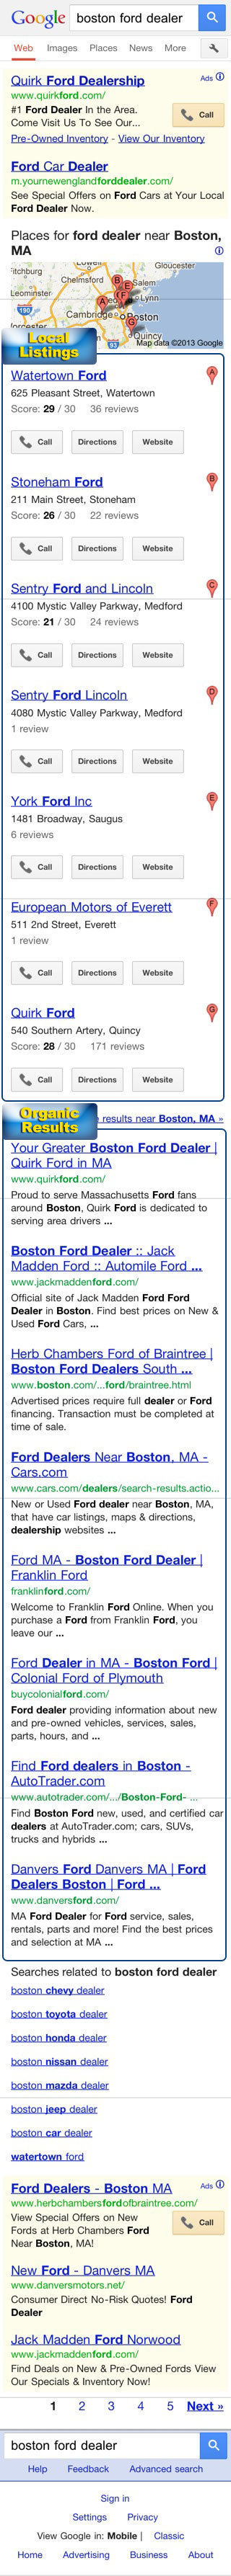 Mobile Safari Browser SERP